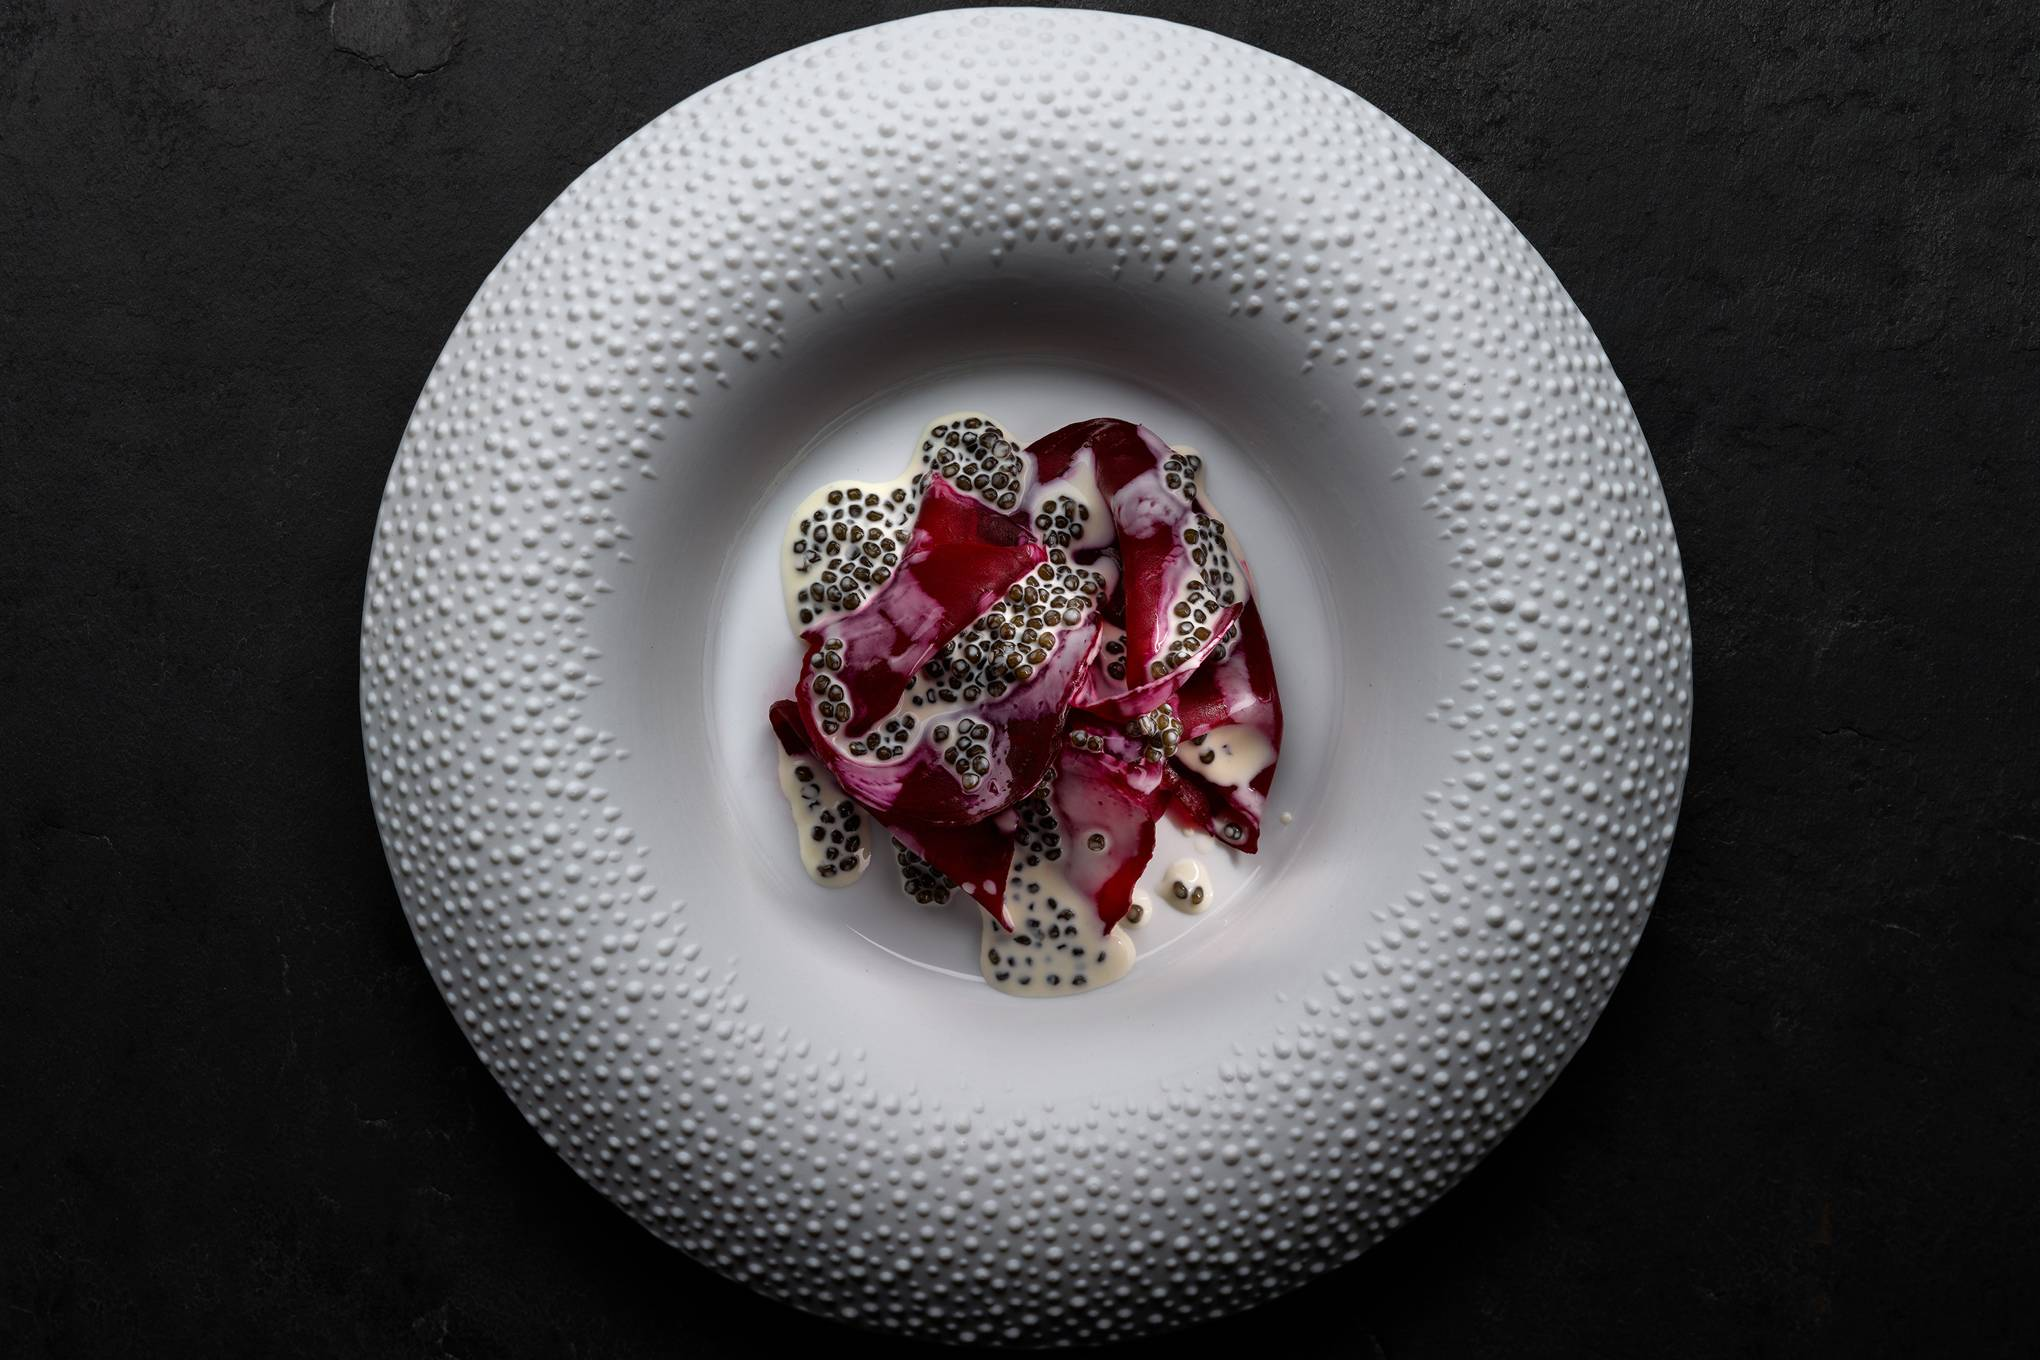 The World's 50 Best Restaurants of 2019: the full winners list